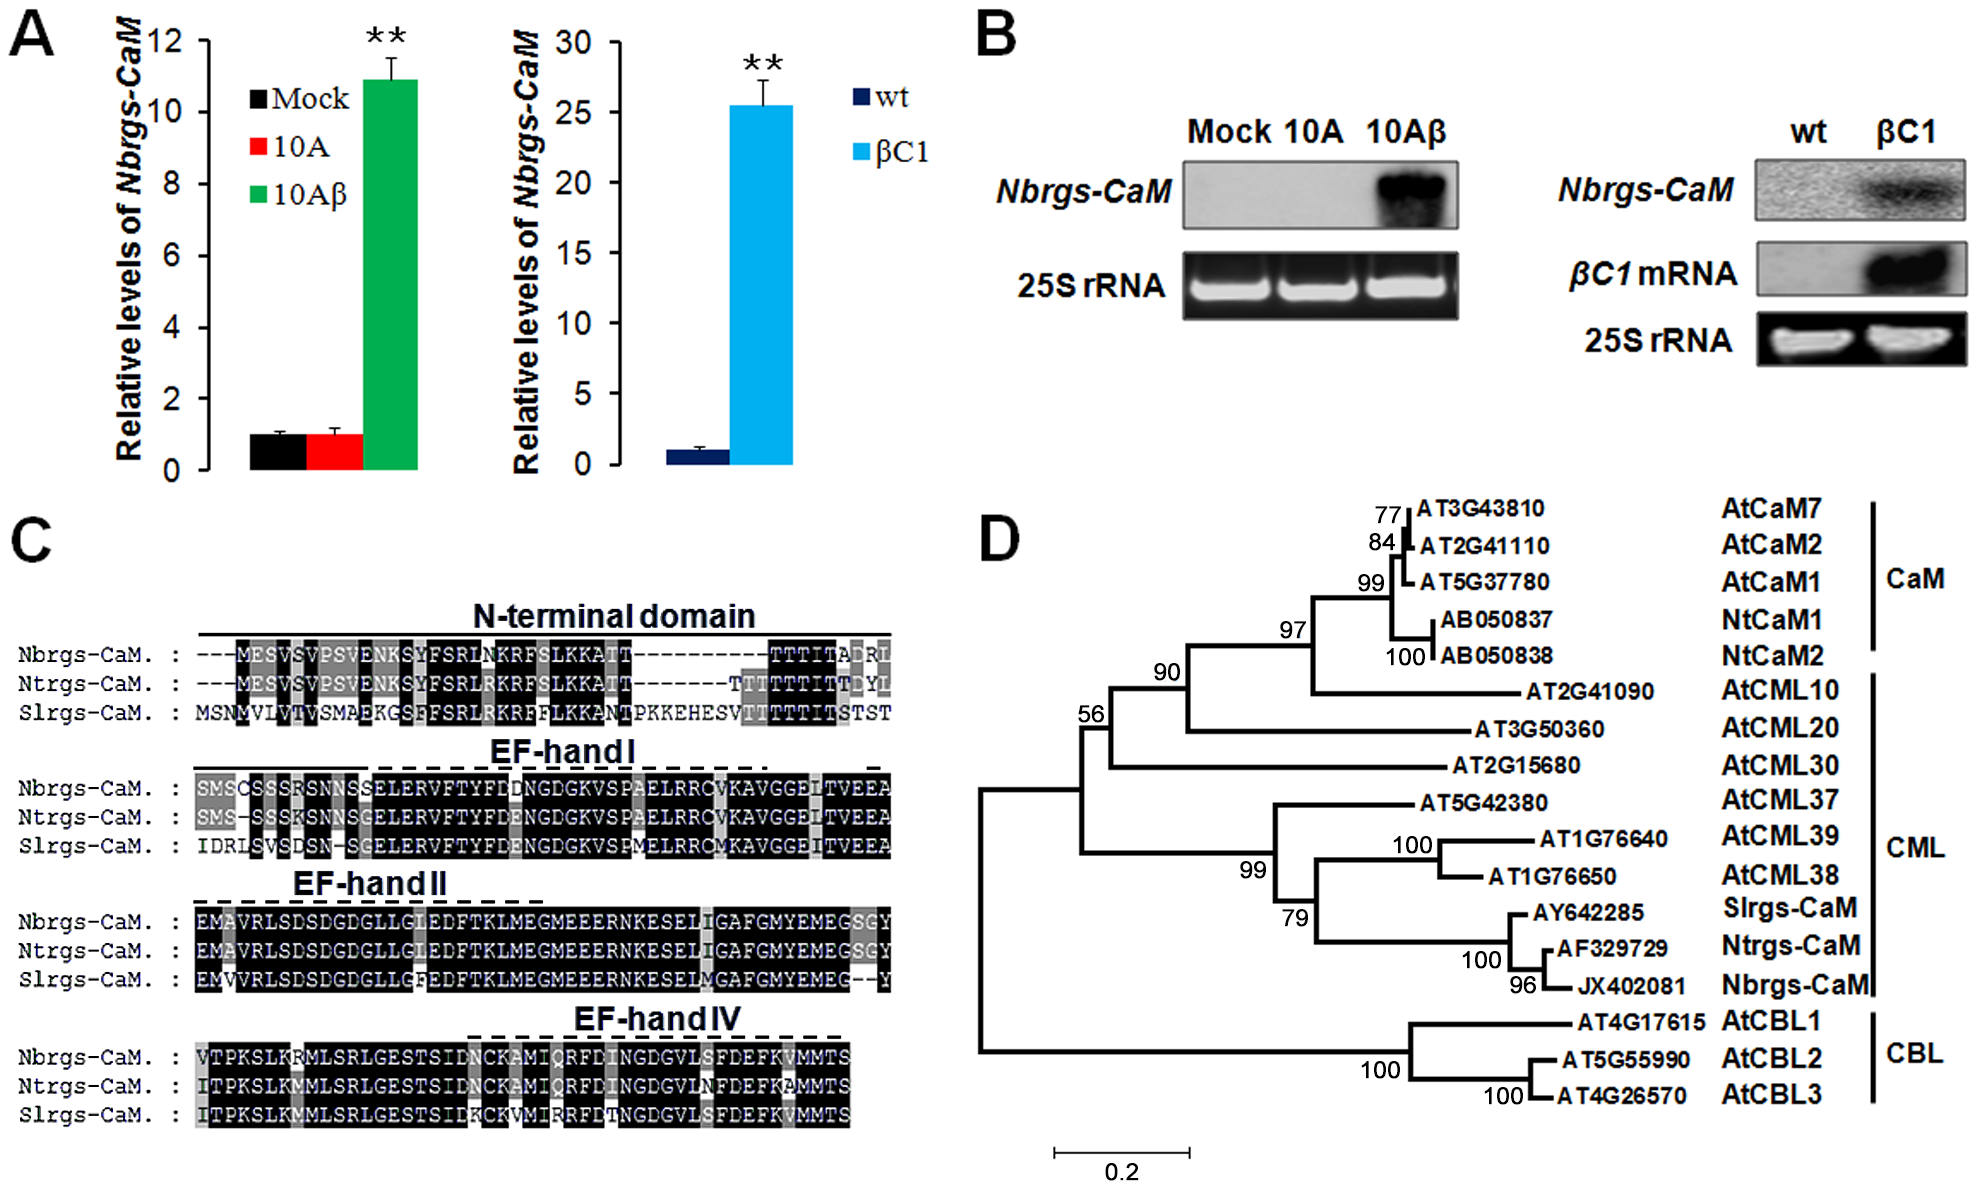 Induction of <i>Nicotiana benthamiana</i> calmodulin-like protein Nbrgs-CaM by TYLCCNB βC1.